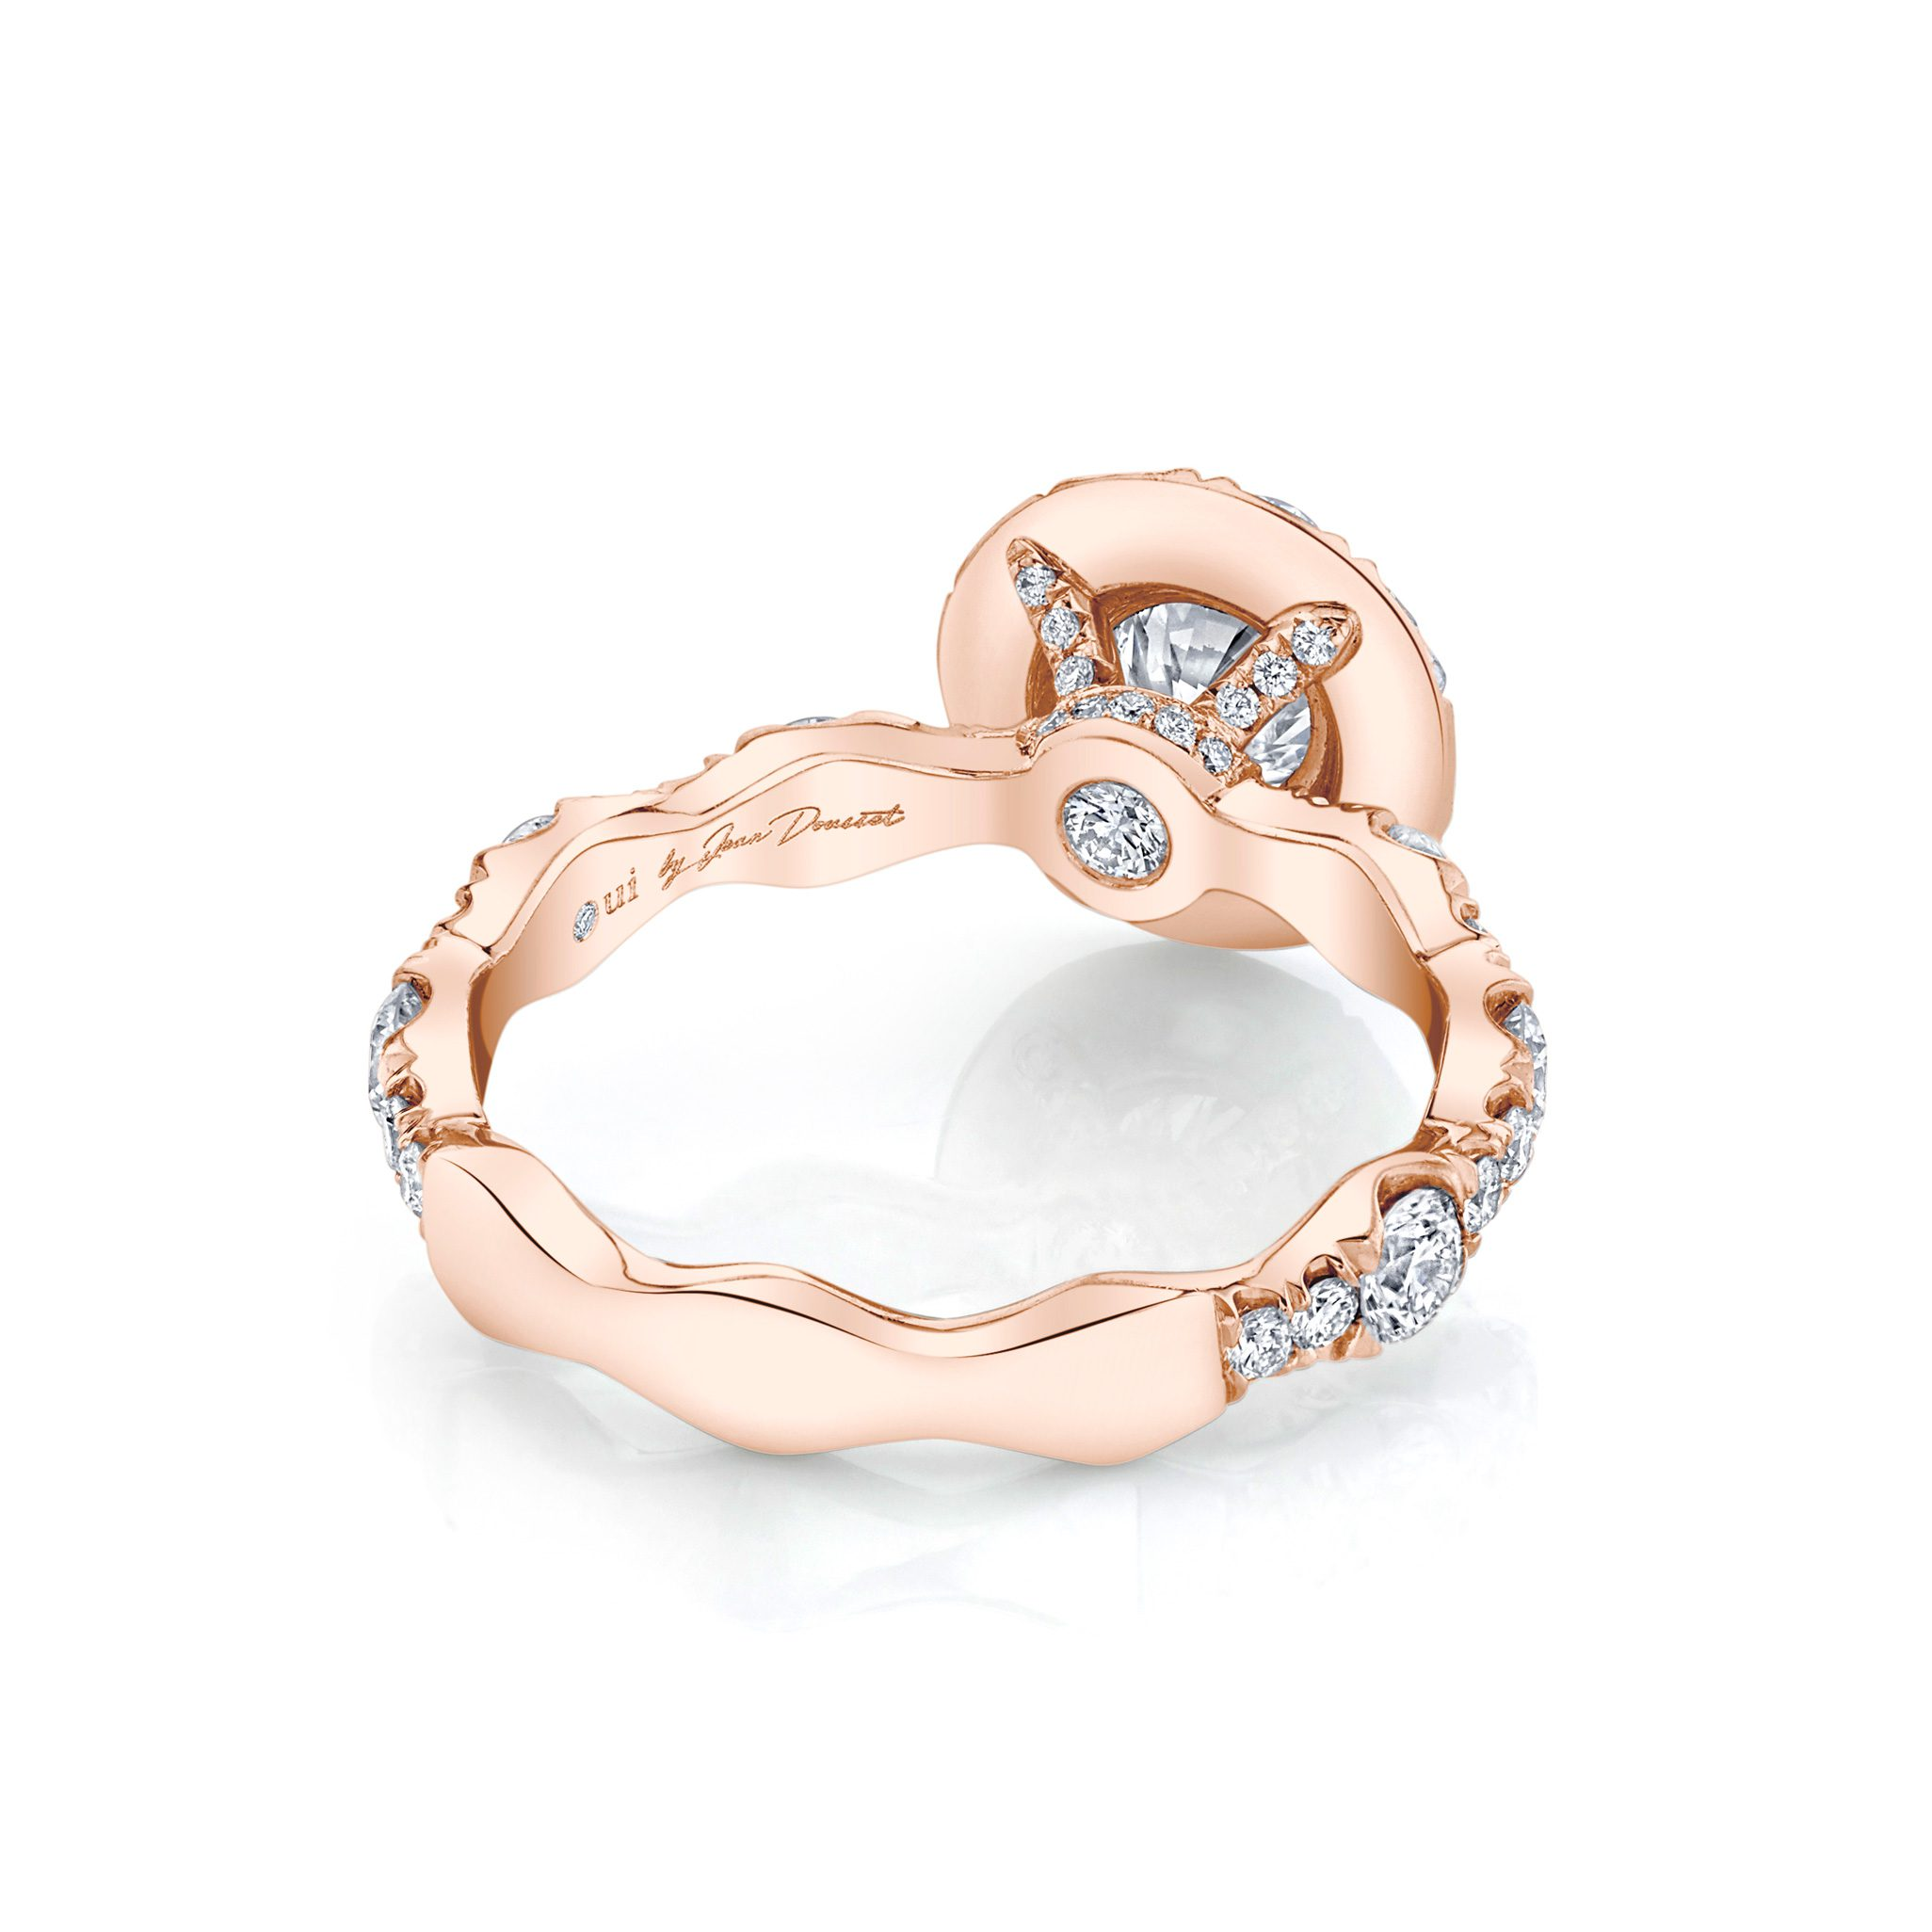 Yvonne Floating Round Brilliant Seamless Solitaire® Engagement Ring 18k Rose Gold Back View by Oui by Jean Dousset